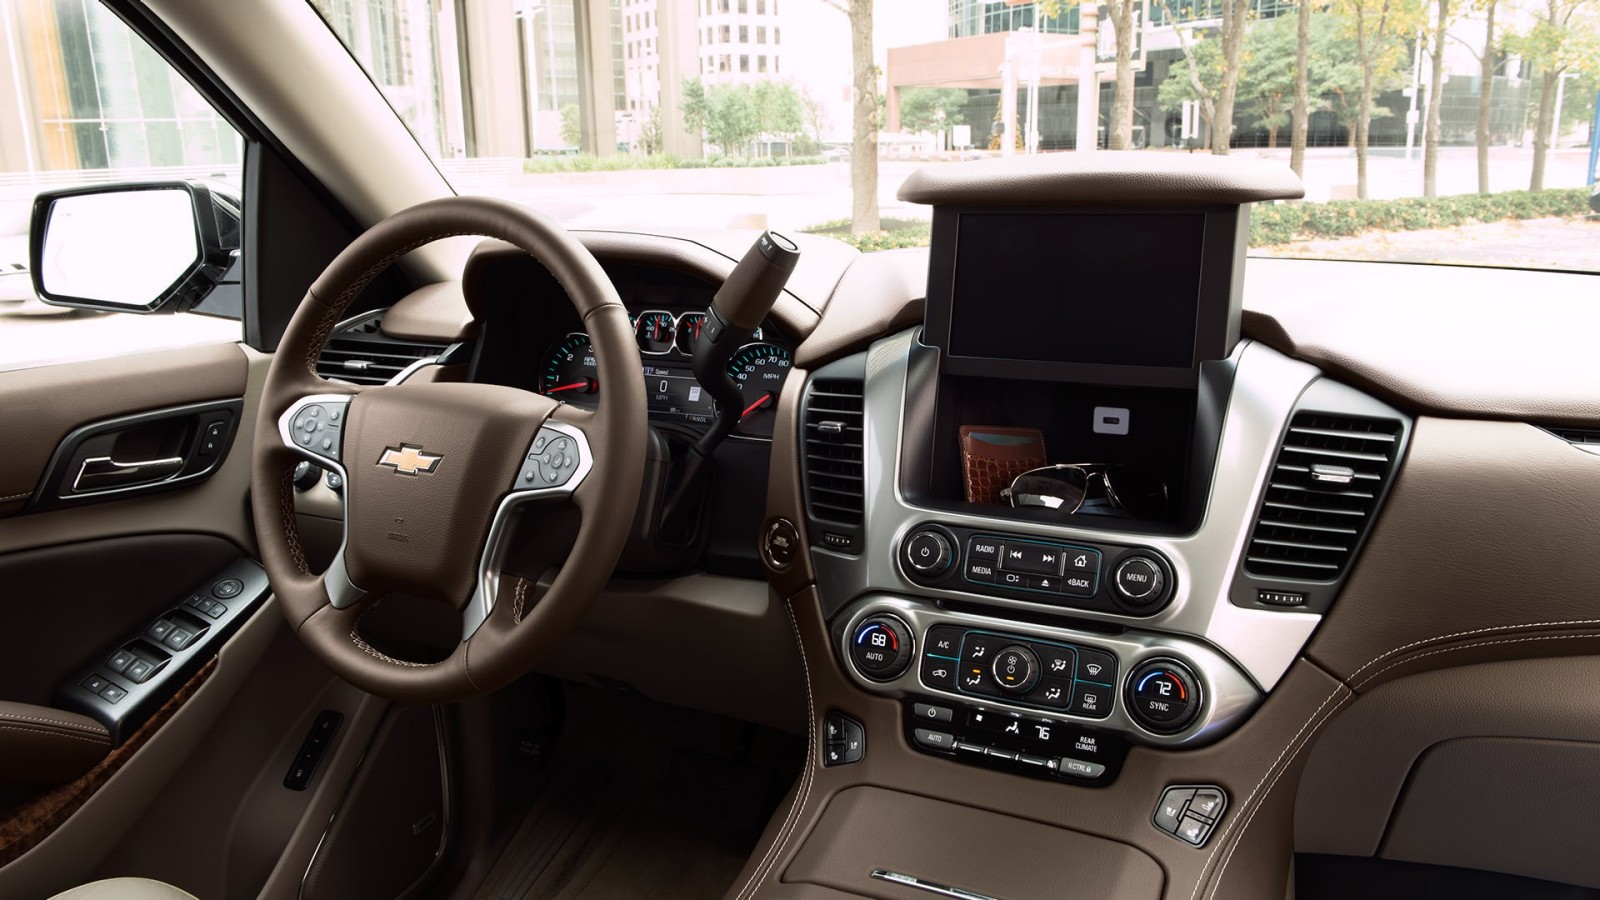 The Well-Equipped Interior of the 2017 Suburban is Stylish!